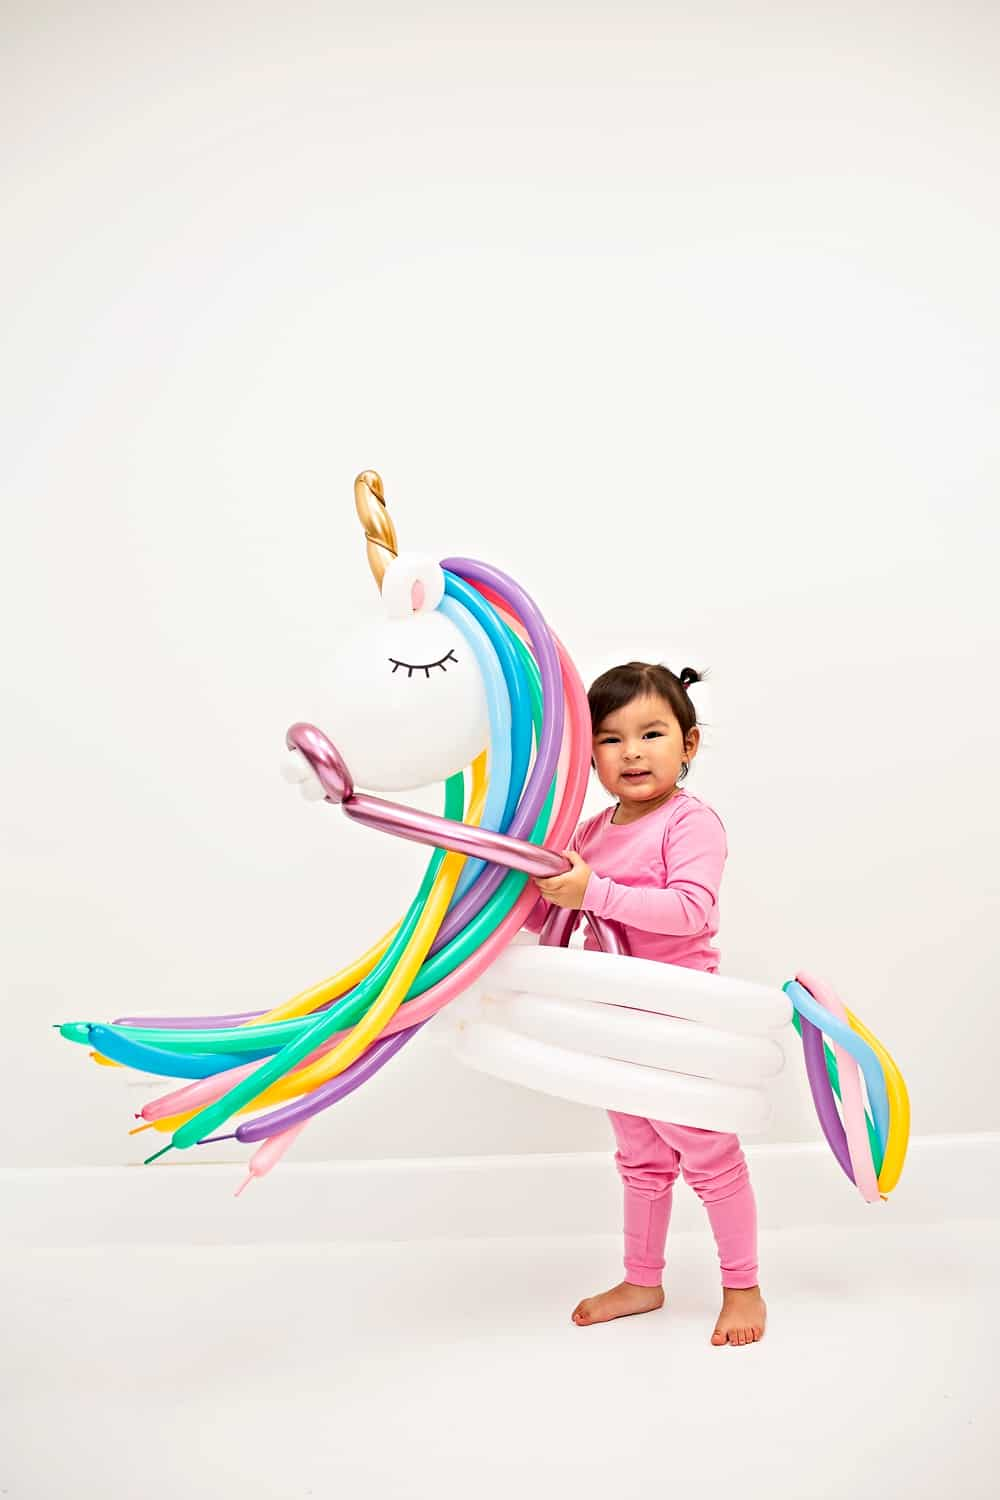 DIY Unicorn Balloon Costume for Kids